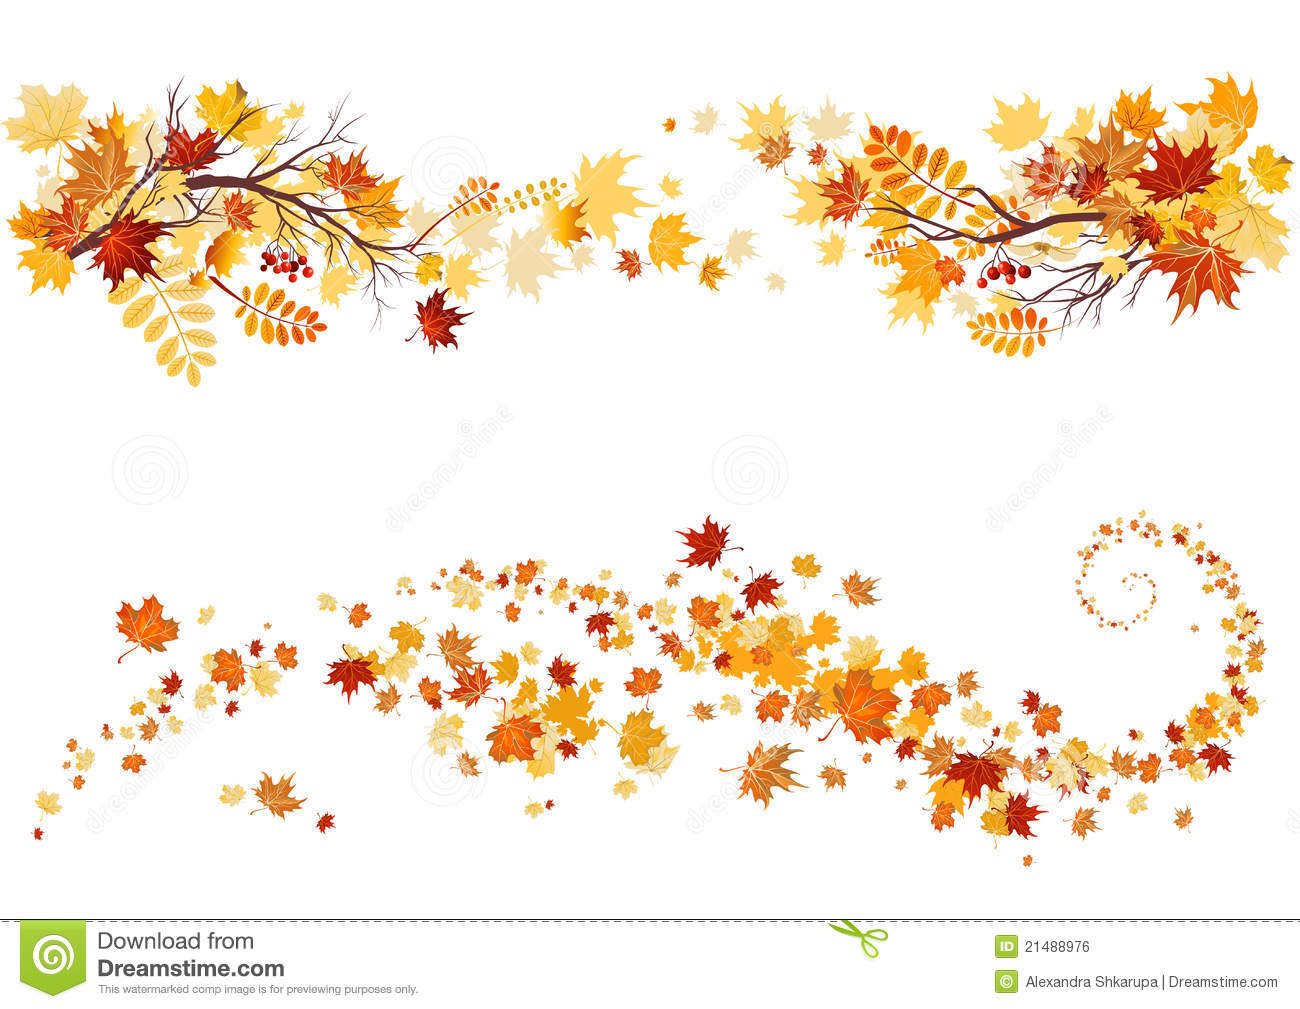 Autumn Leaves Border Royalty Free Stock Image   Image  21488976